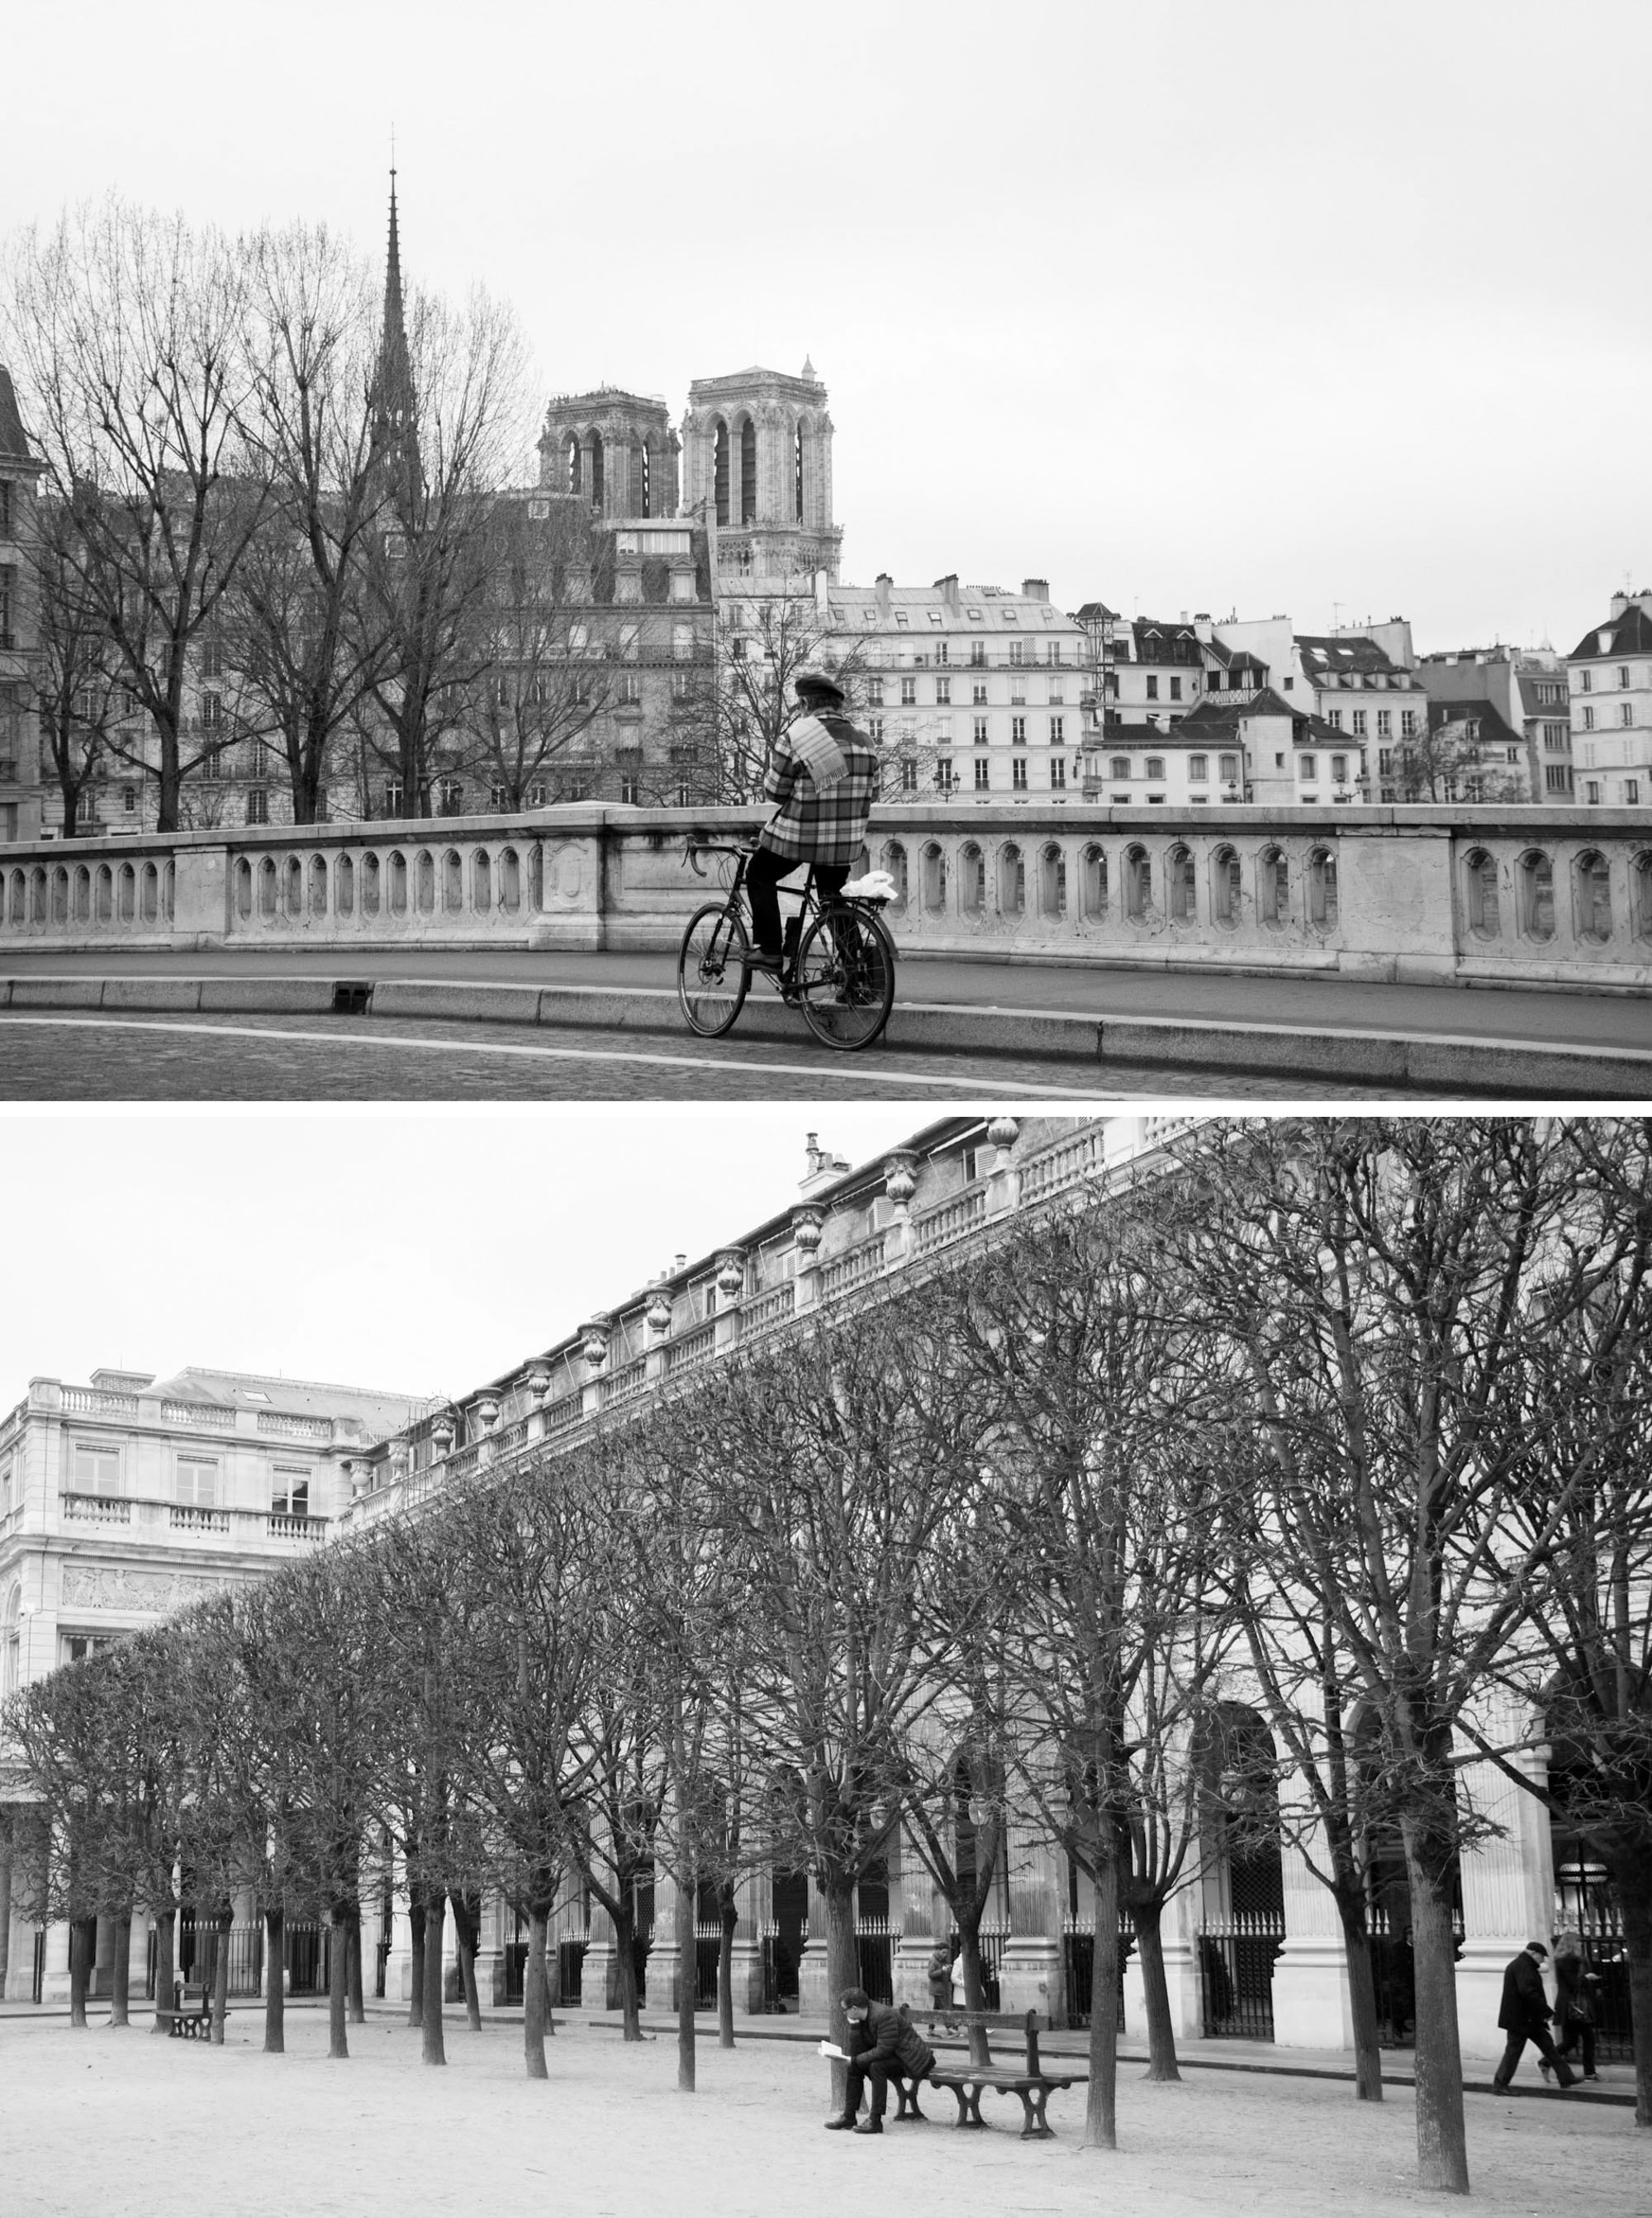 Winter in Paris | Paris black and white photography | Travel photography